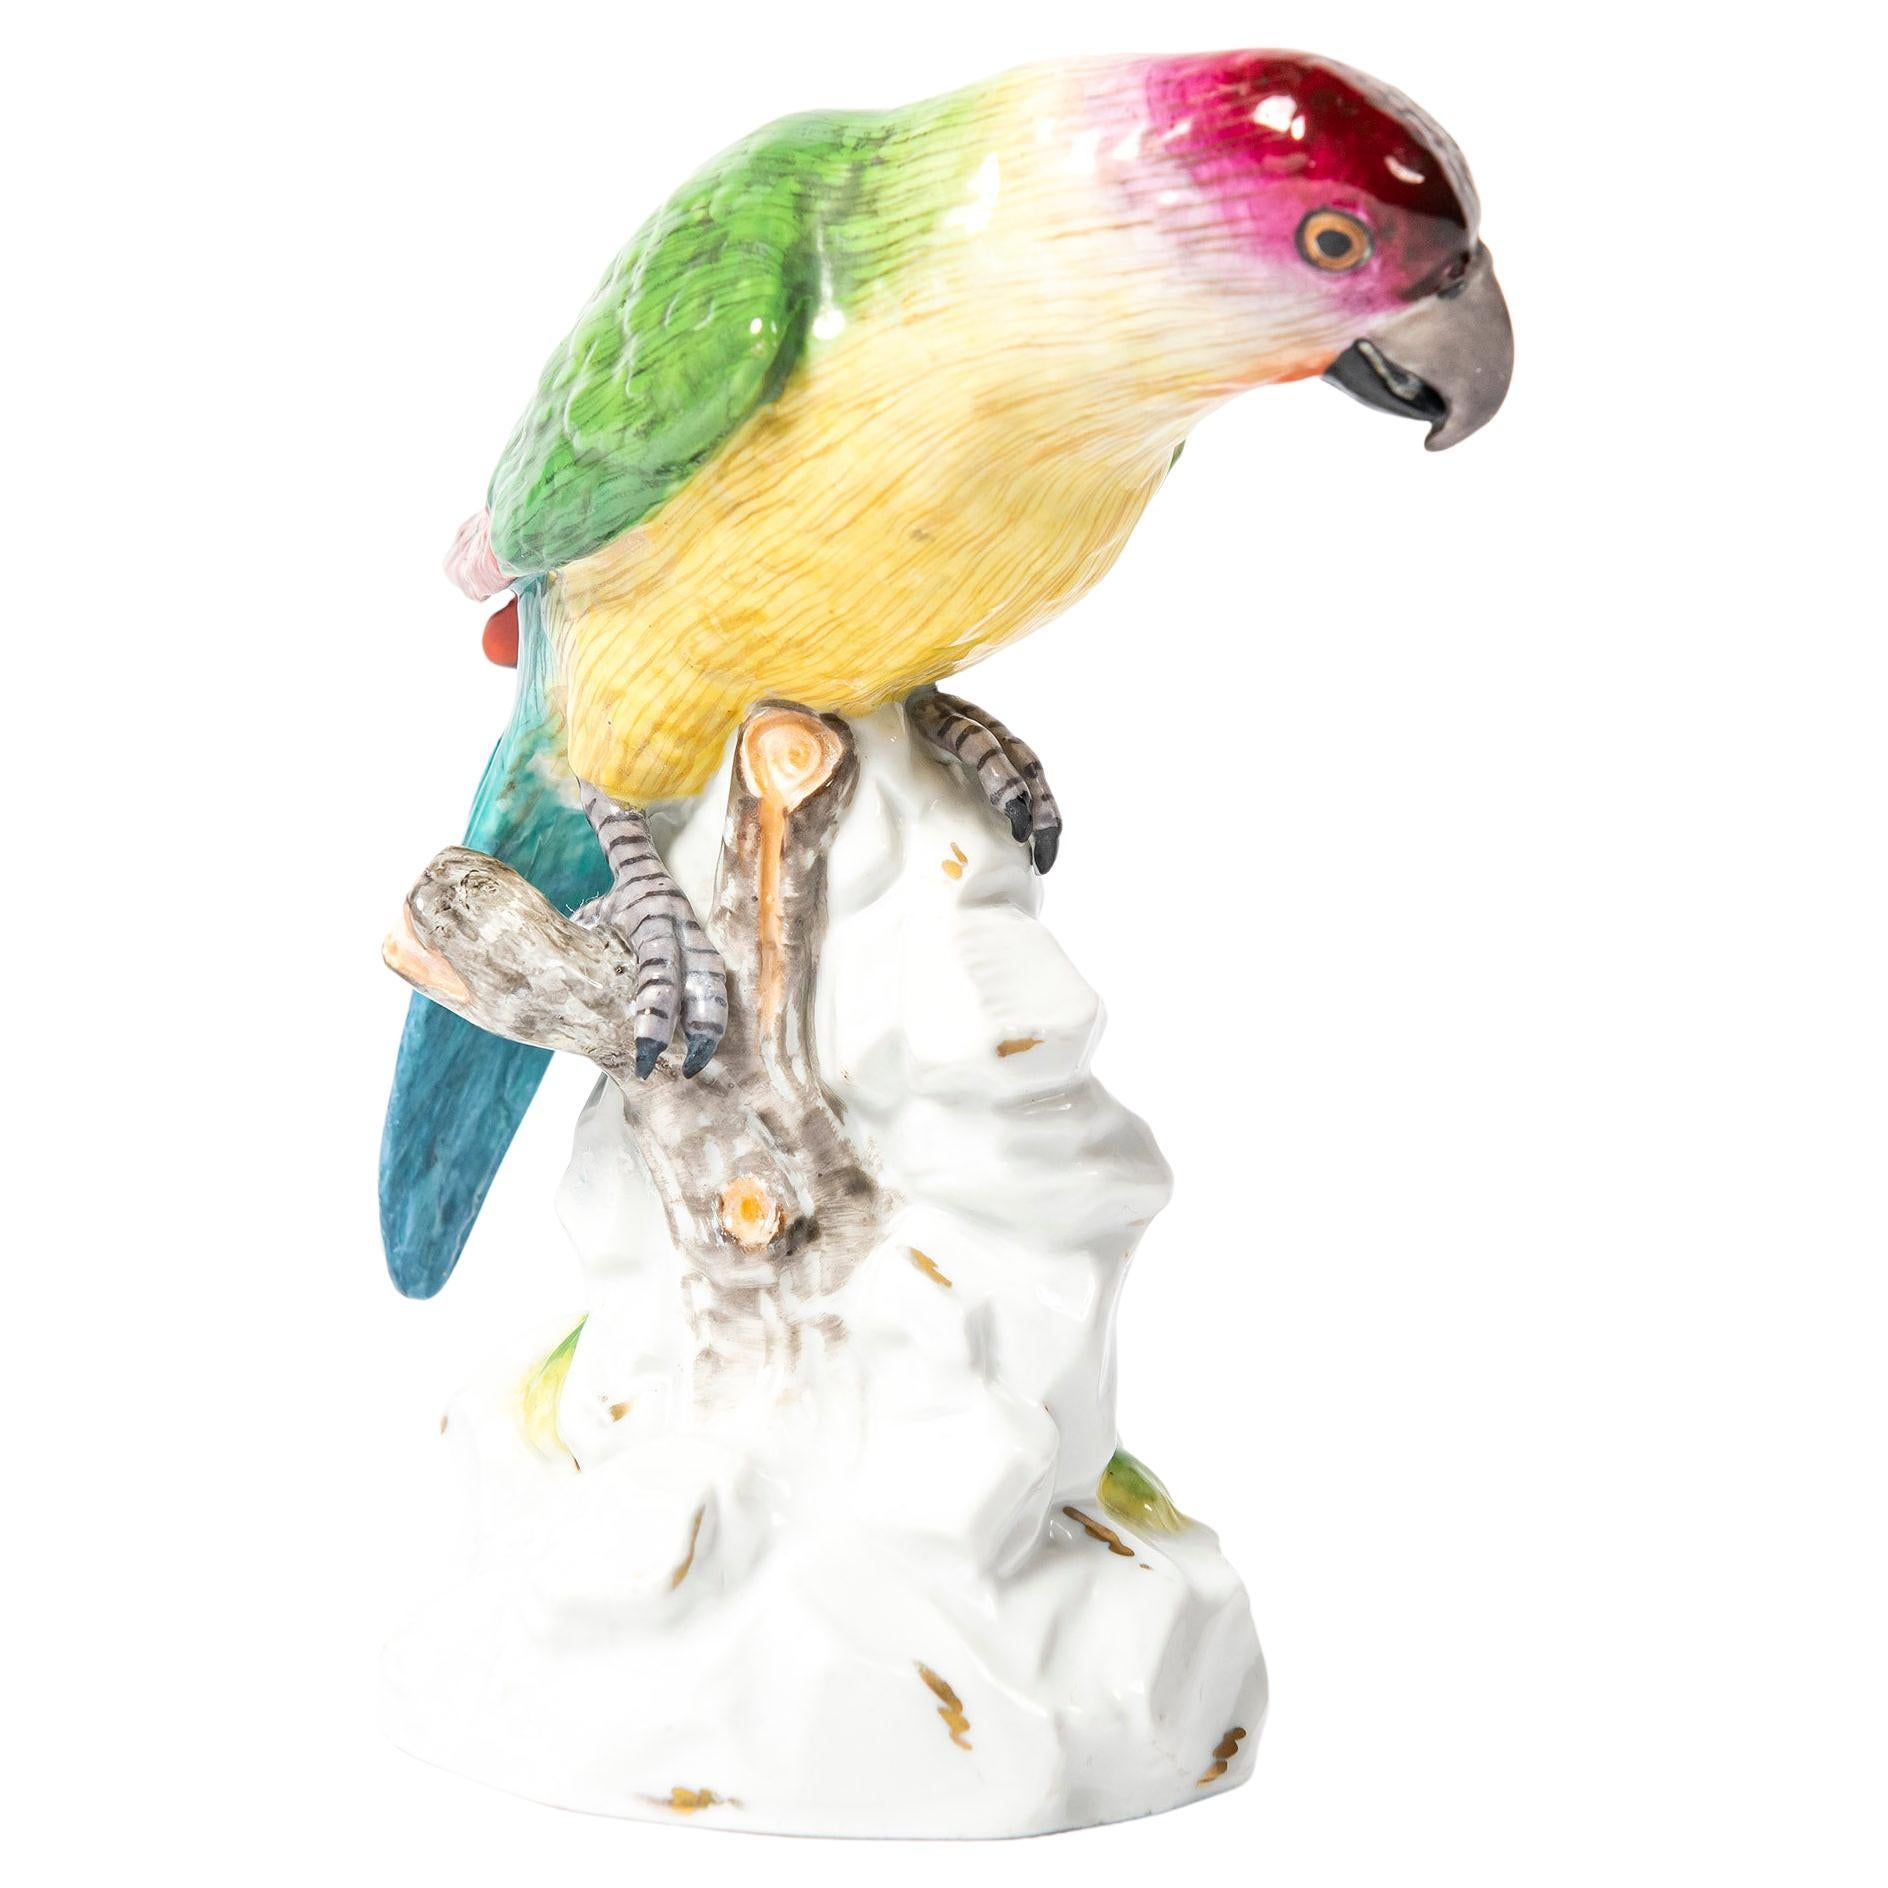 Painted Porcelain Parrot by Volkstedt, Germany, Early 20th Century